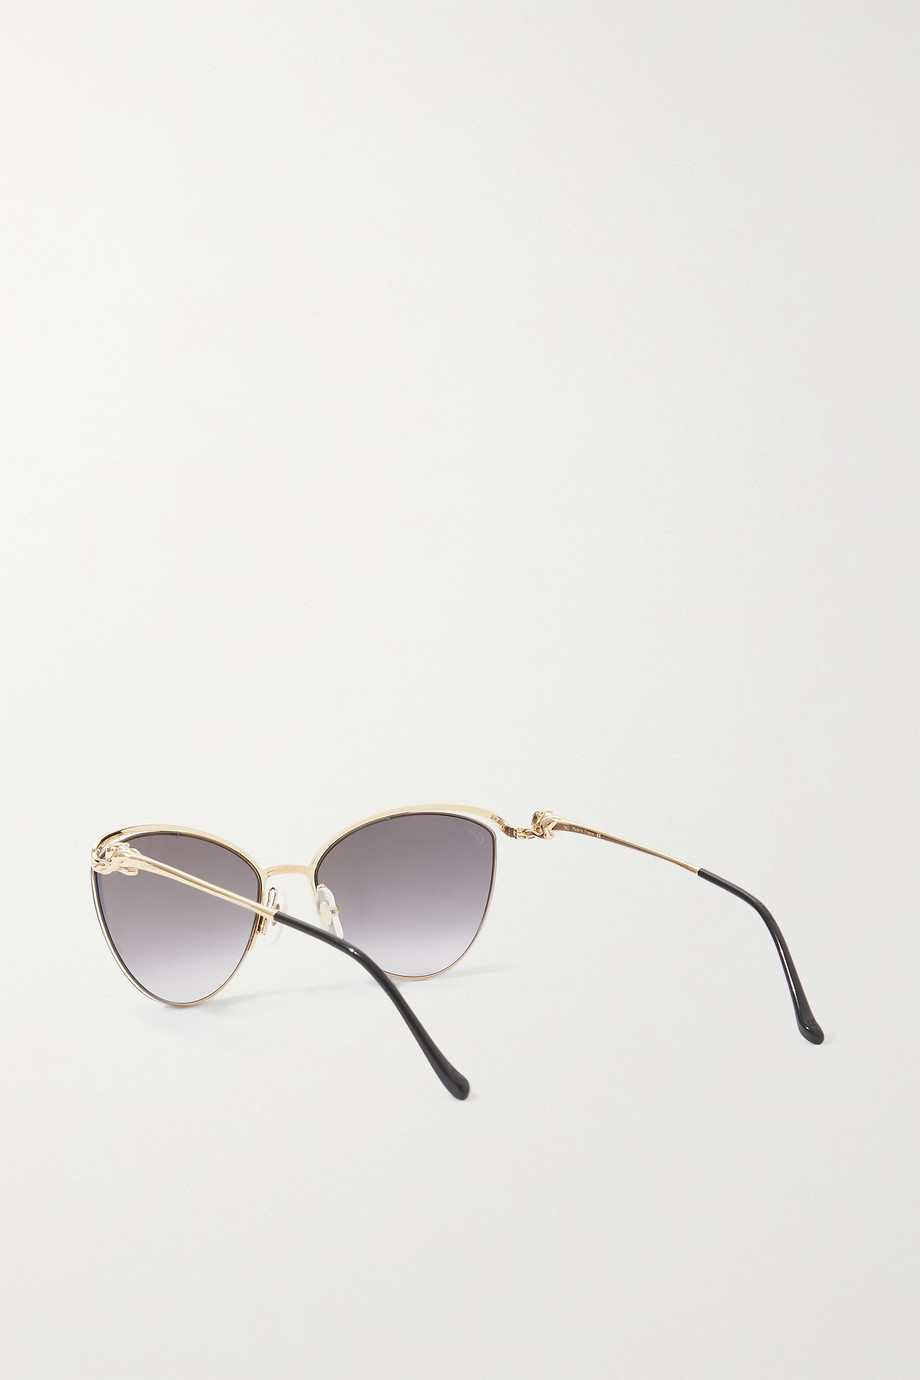 CARTIER EYEWEAR Panthère cat-eye gold-tone sunglasses